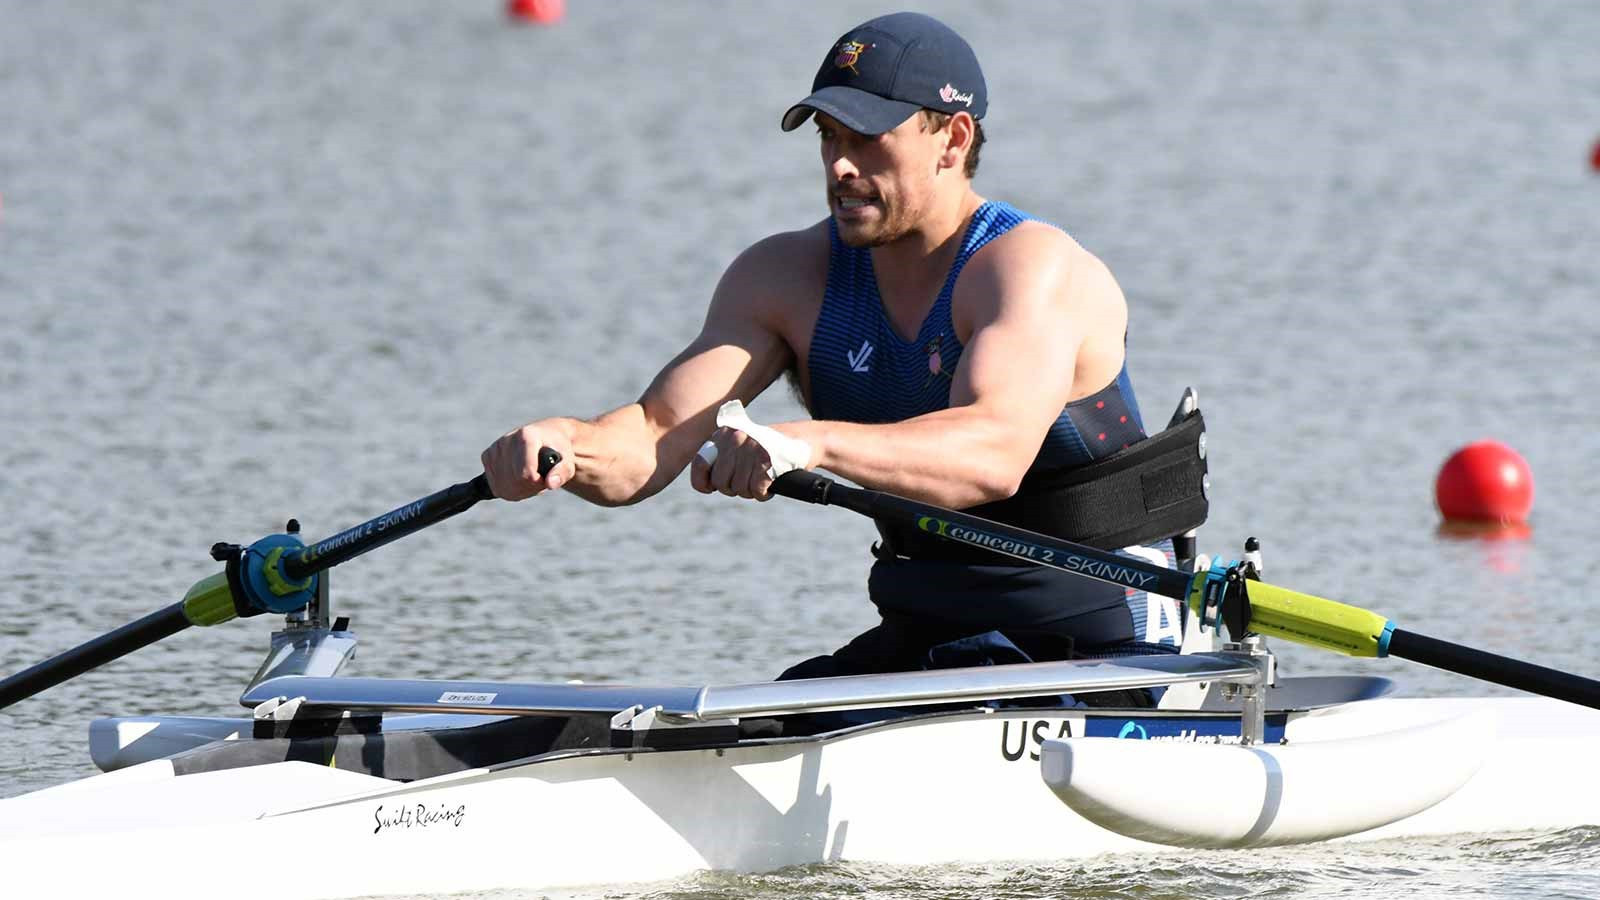 American Blake Haxton was among the other qualifiers today ©US Rowing